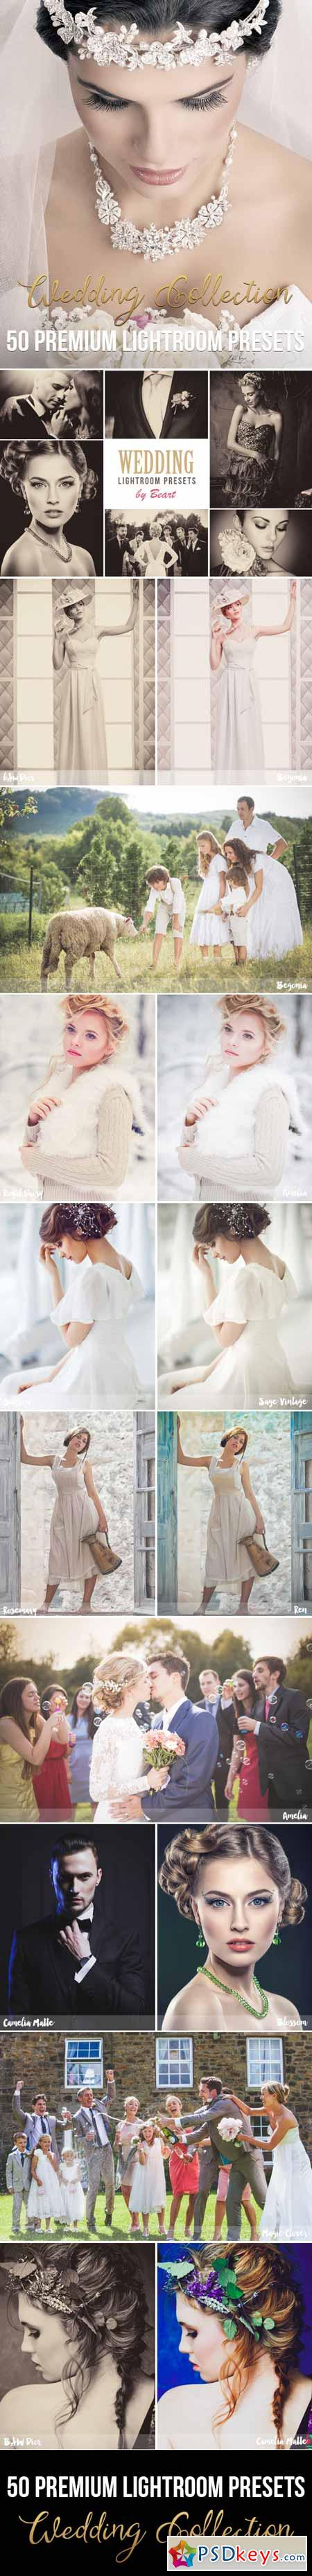 50 Premium Wedding Lightroom Presets 11494445